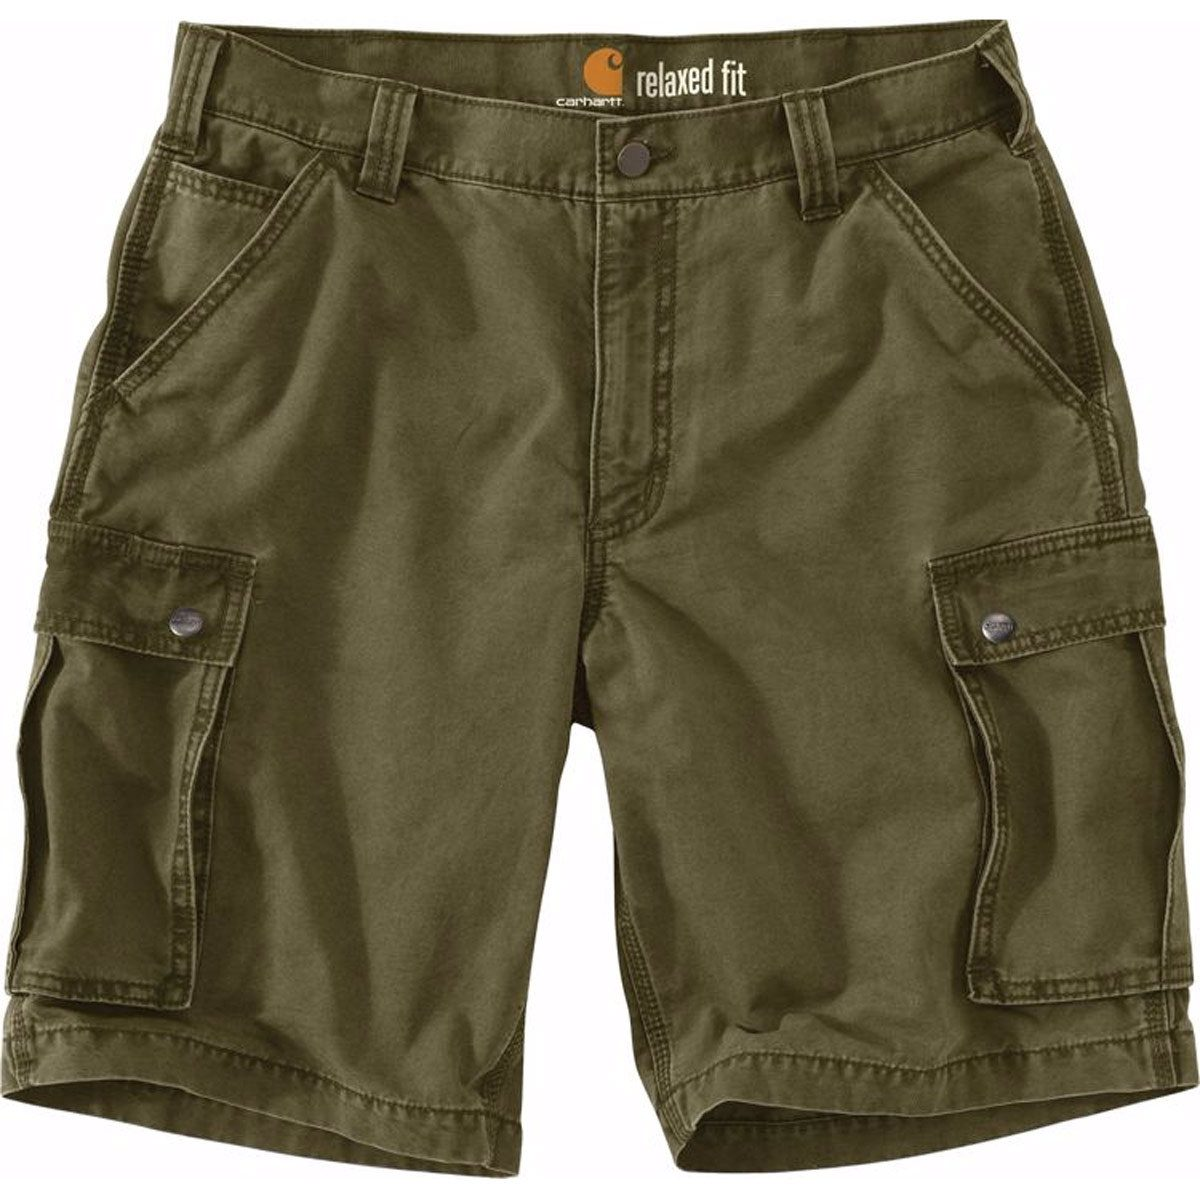 download-5-1200x1200 Outdoor Clothing Work Shorts for Warmer Weather